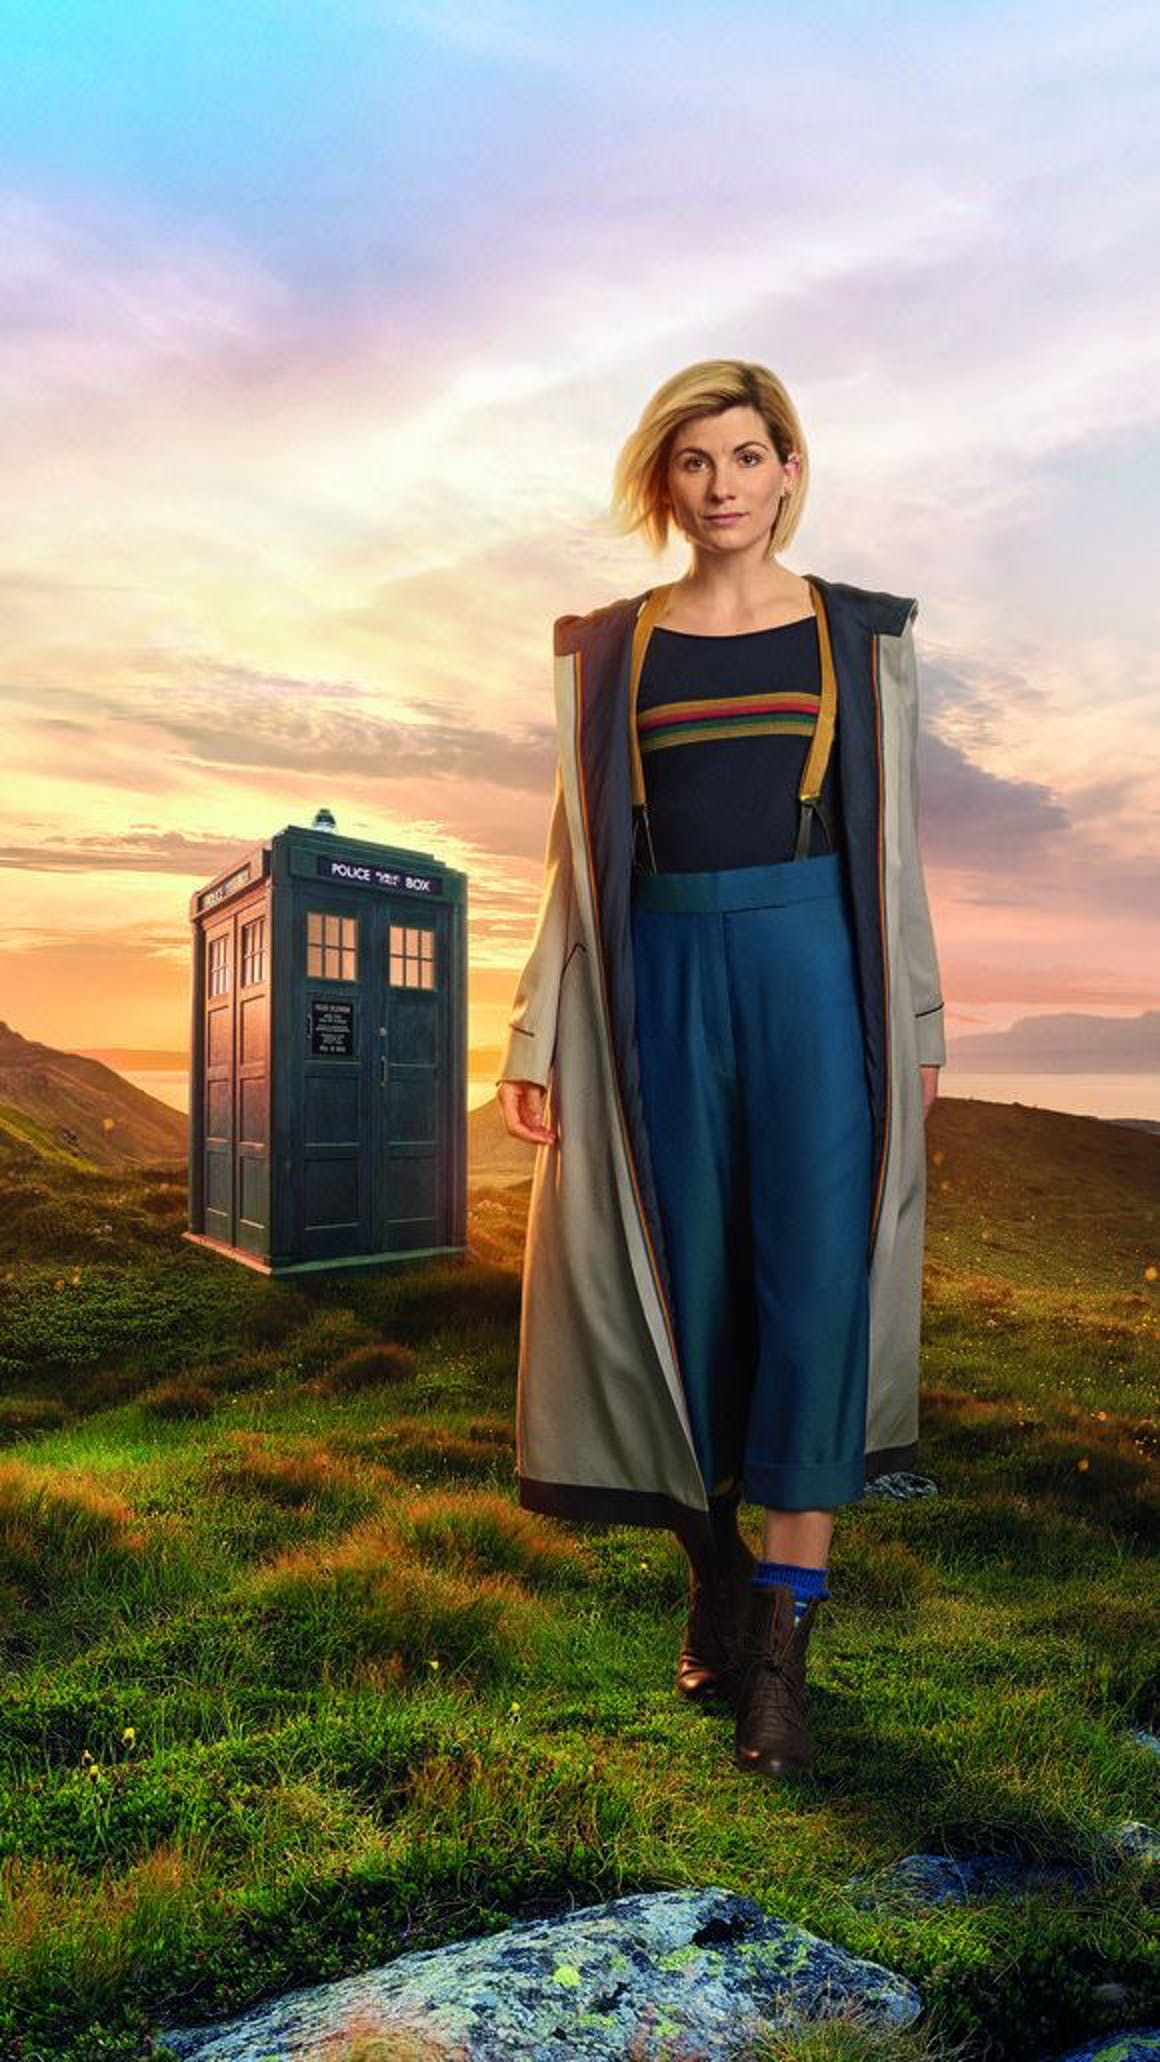 Jodie Whittaker's Doctor will have a costume full of flair, style, and hipster spirit.